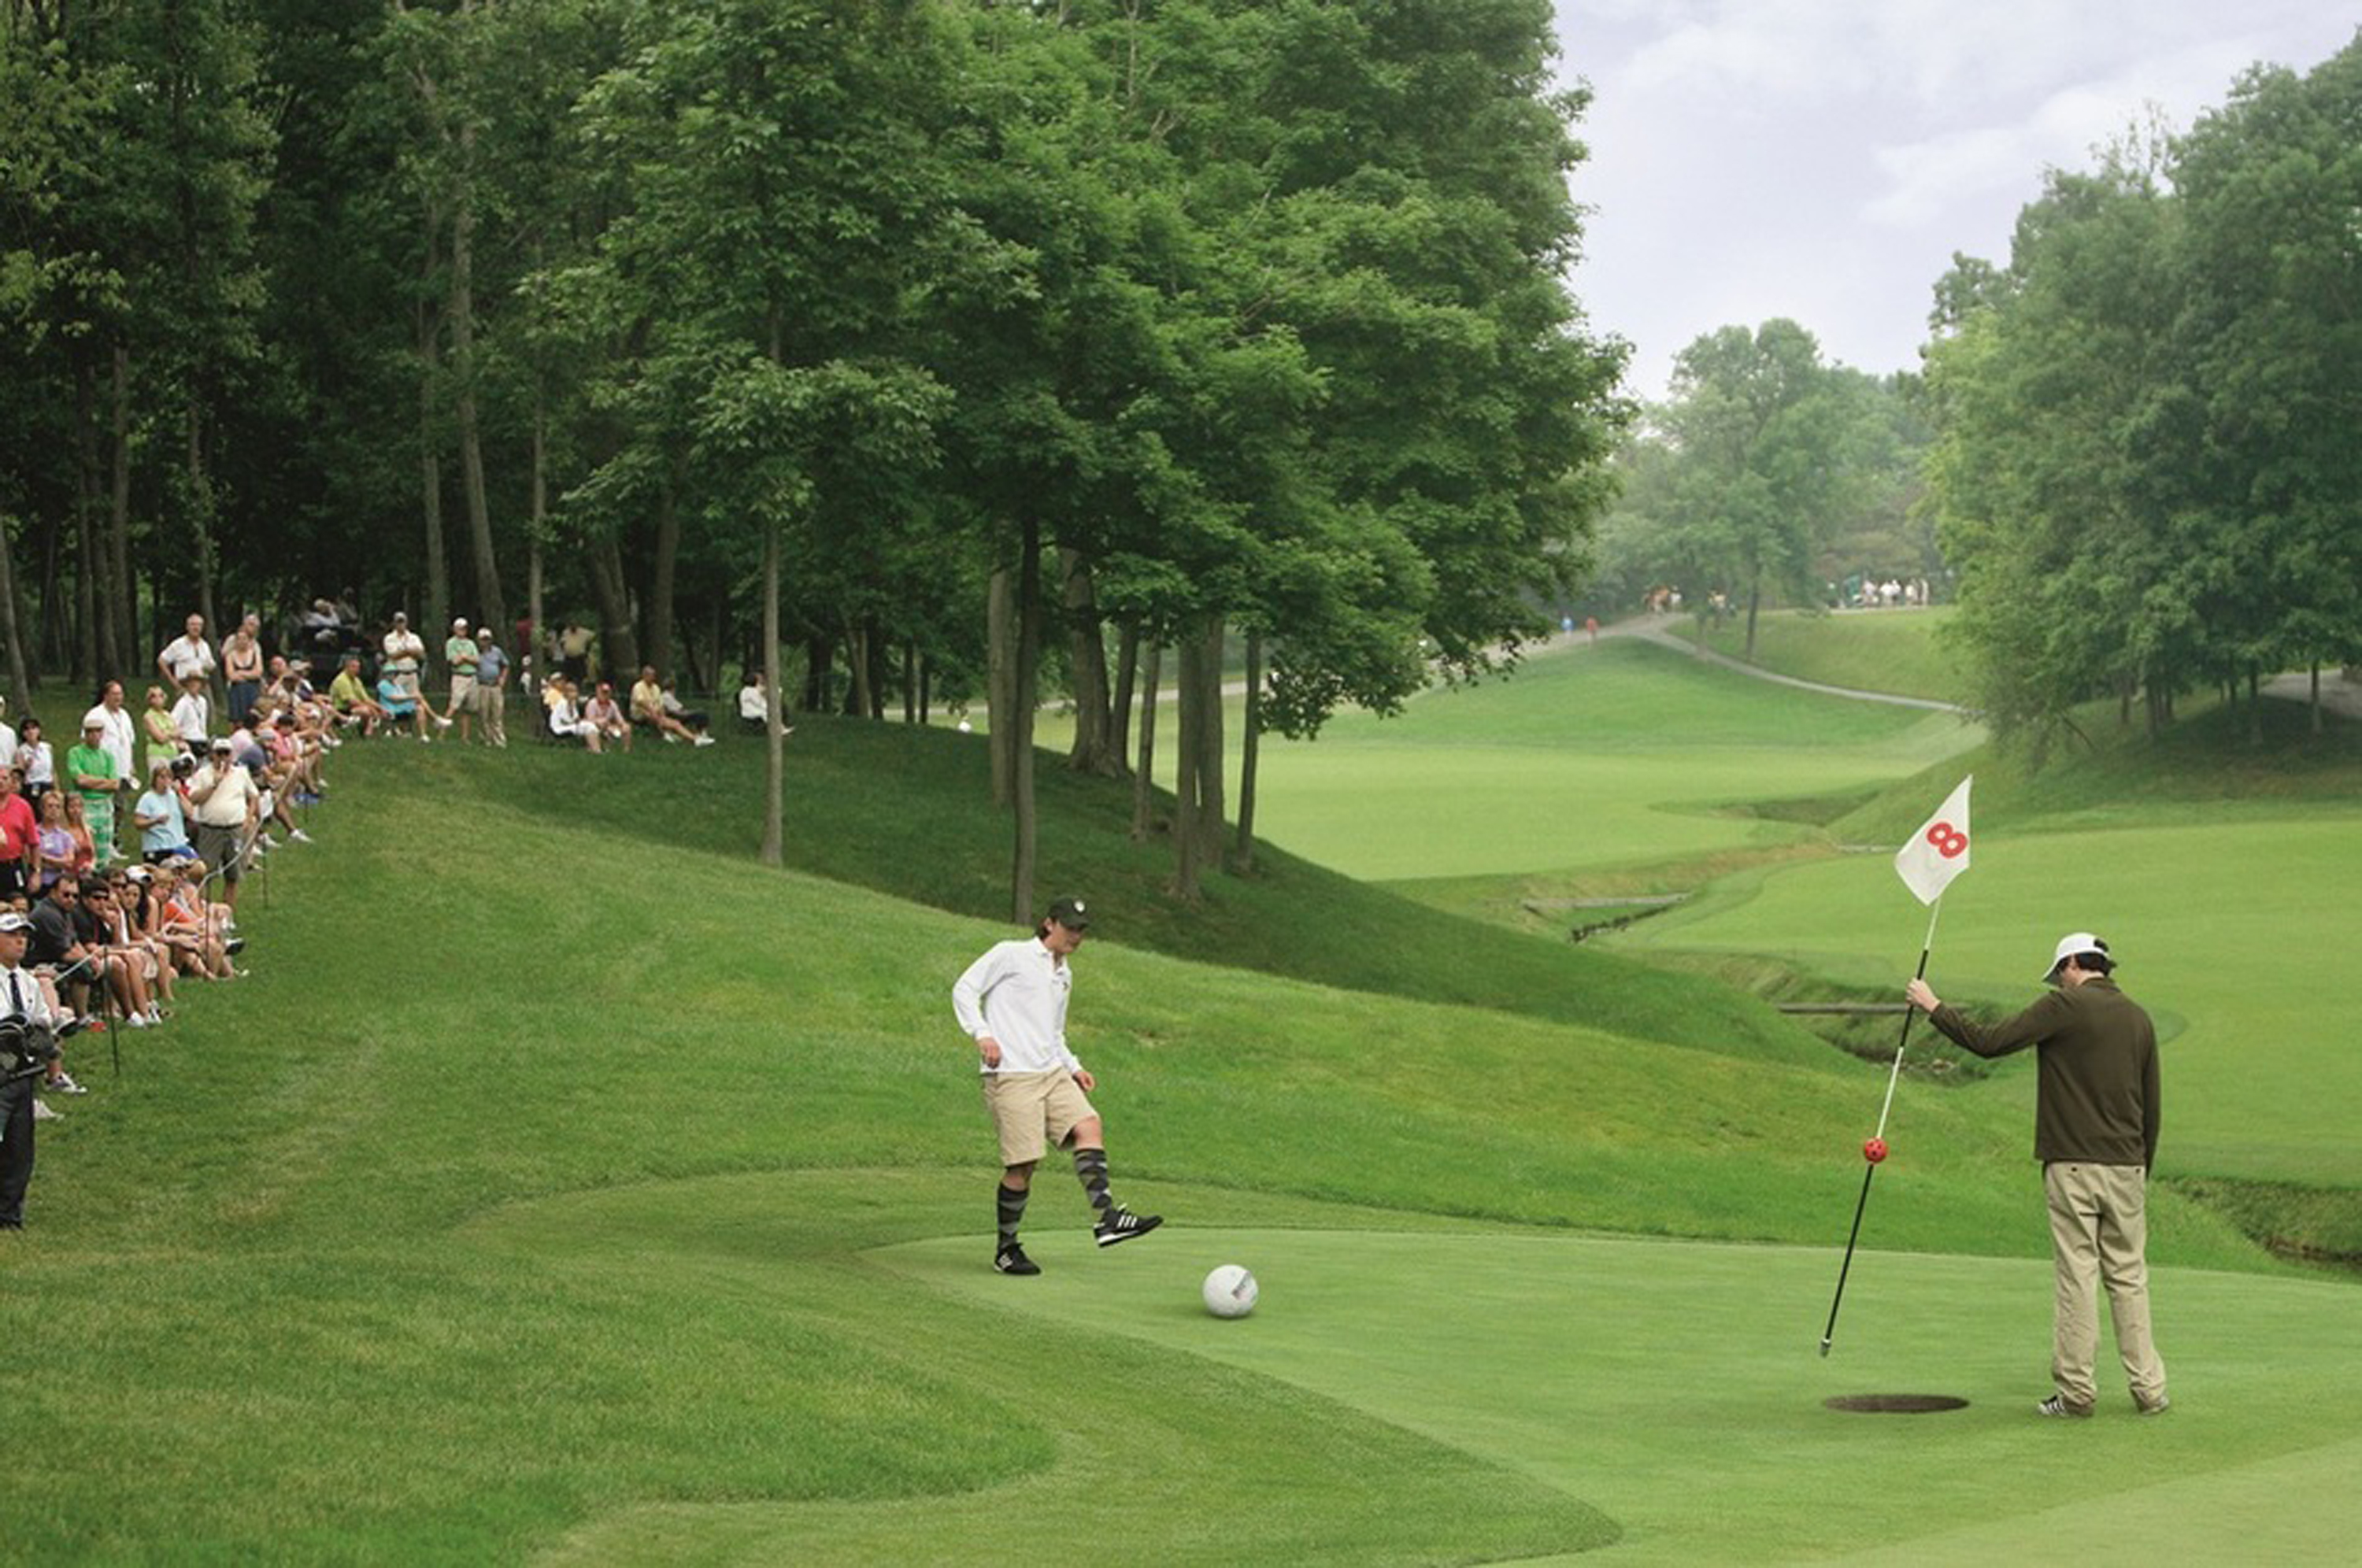 Lakeside Home Plans Traverse City Golf Courses Introduce Quot Footgolf Quot To Local Links